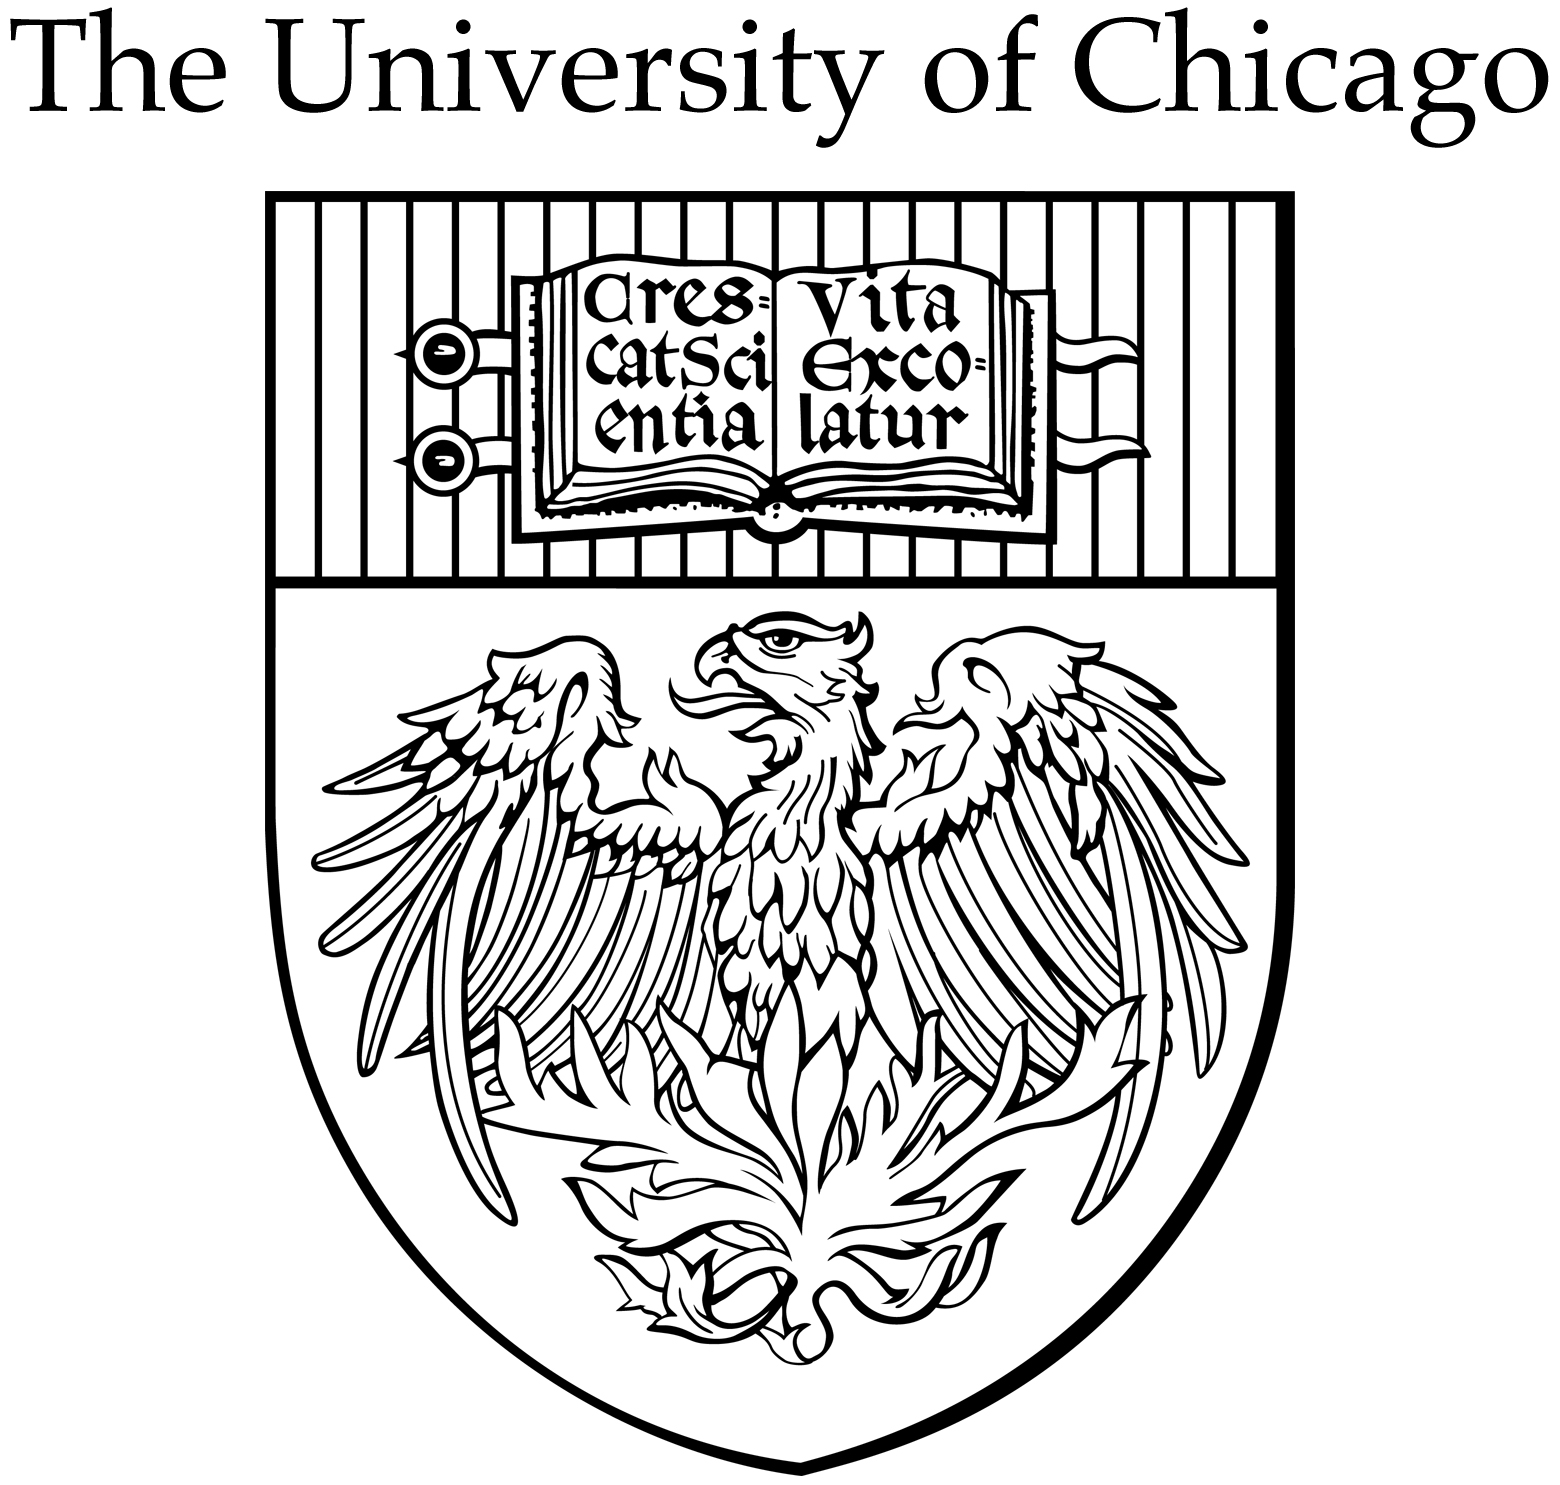 women in the workplace stereotypes 1940s tax policies and alumni u chicago logo1